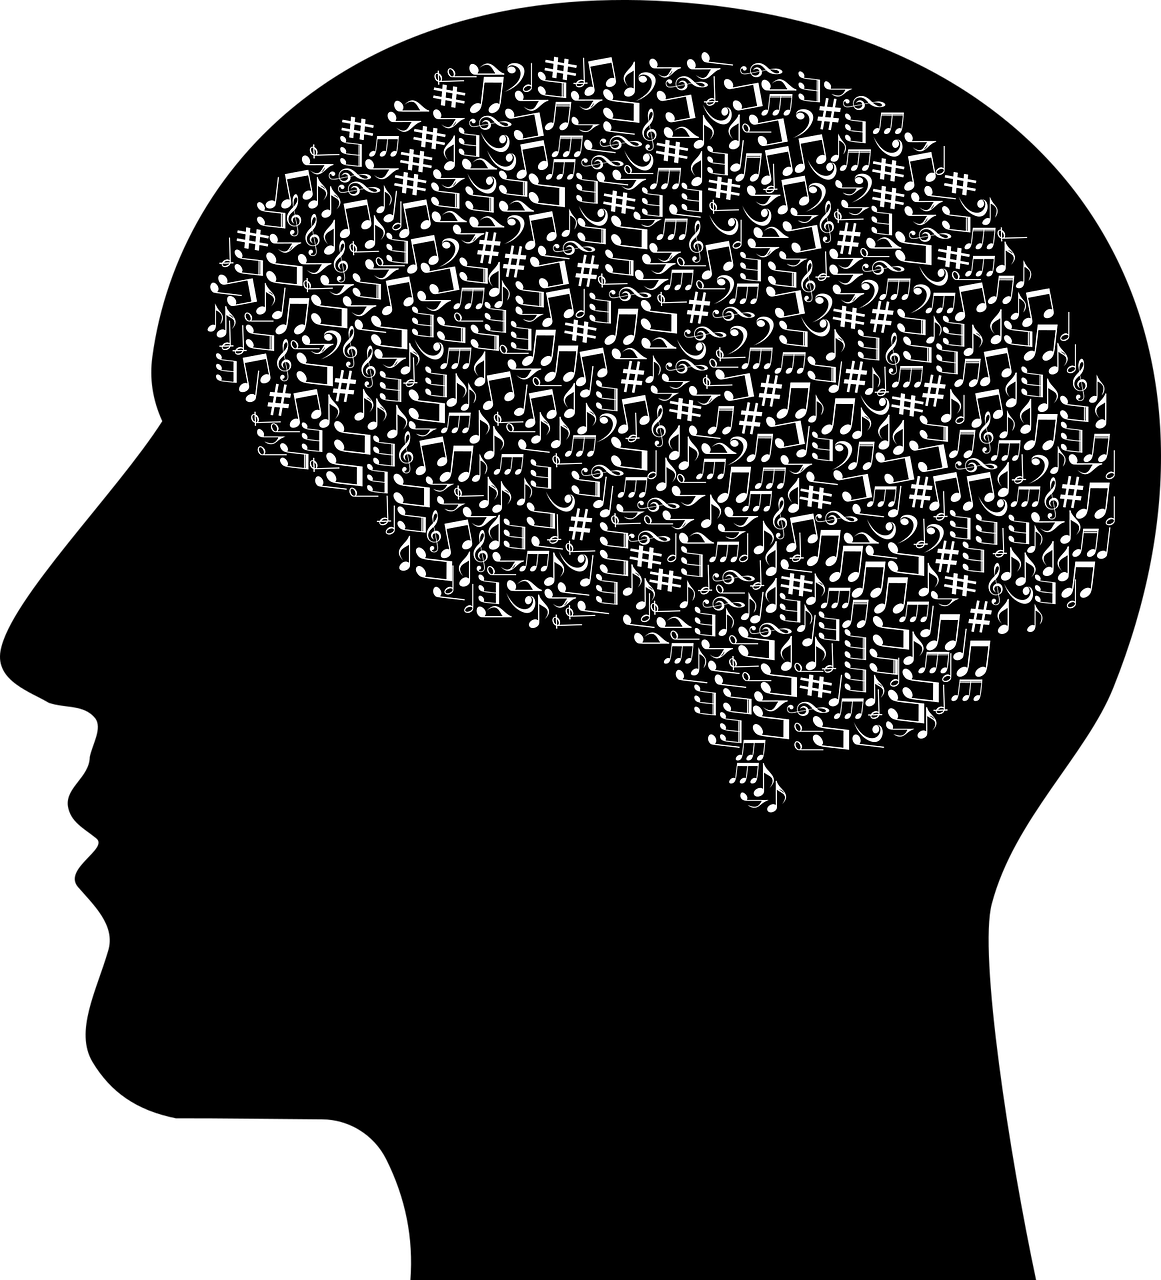 Illustration of man and outline of brain filled with musical symbols.